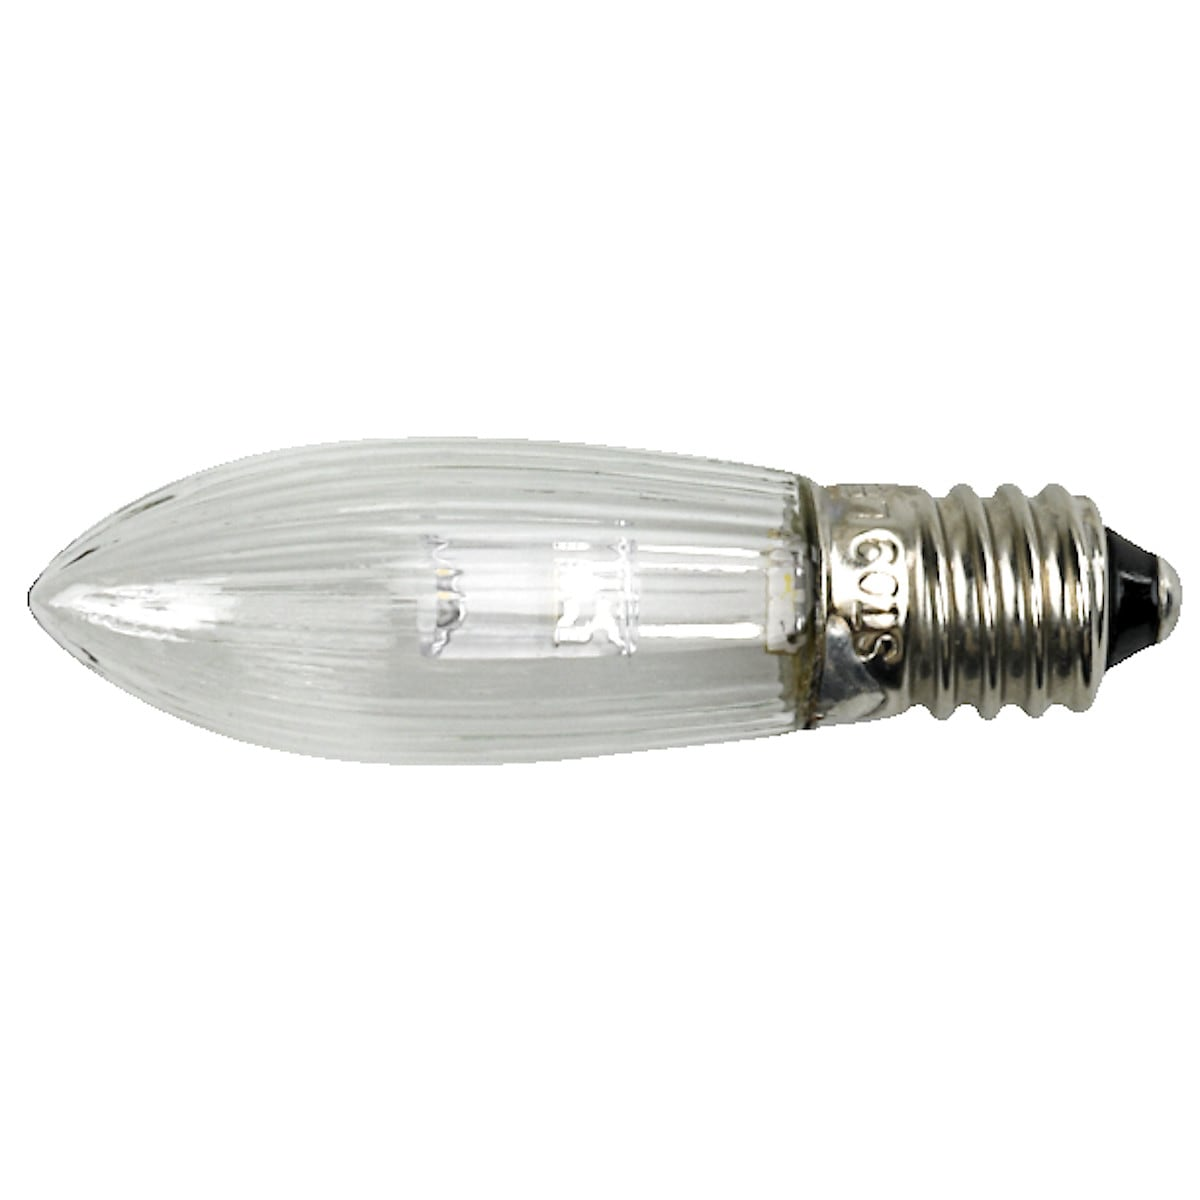 LED-varalamppu 10-55, 4 kpl Northlight